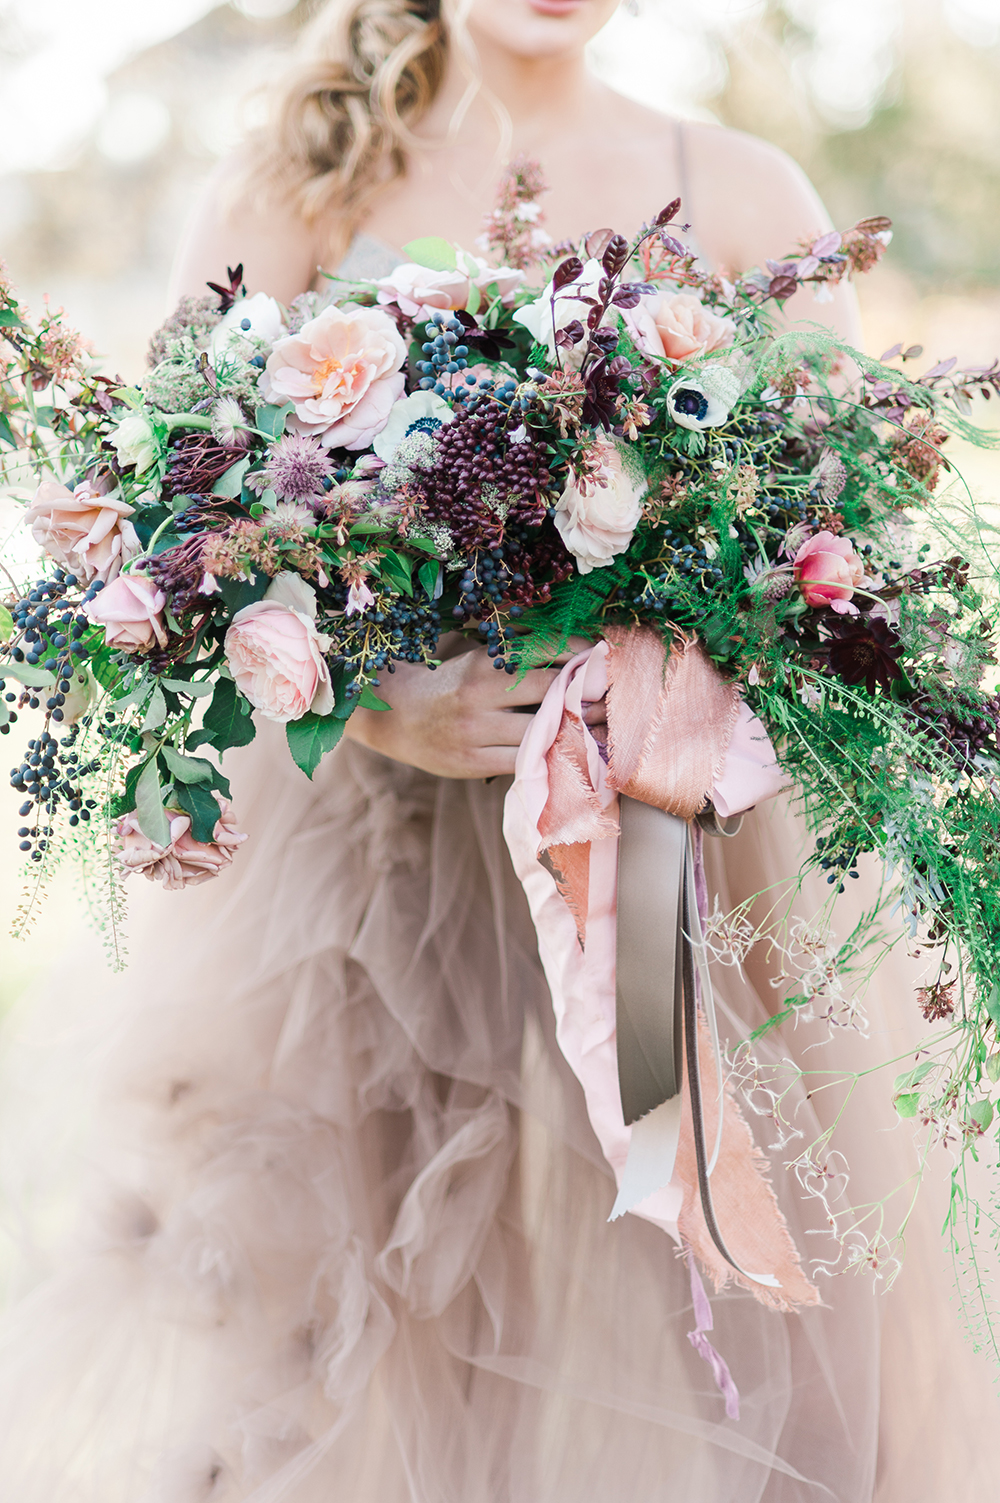 wild bouquet with anemones - photo by Jenny B Photos http://ruffledblog.com/ethereal-wedding-inspiration-with-vintage-accents